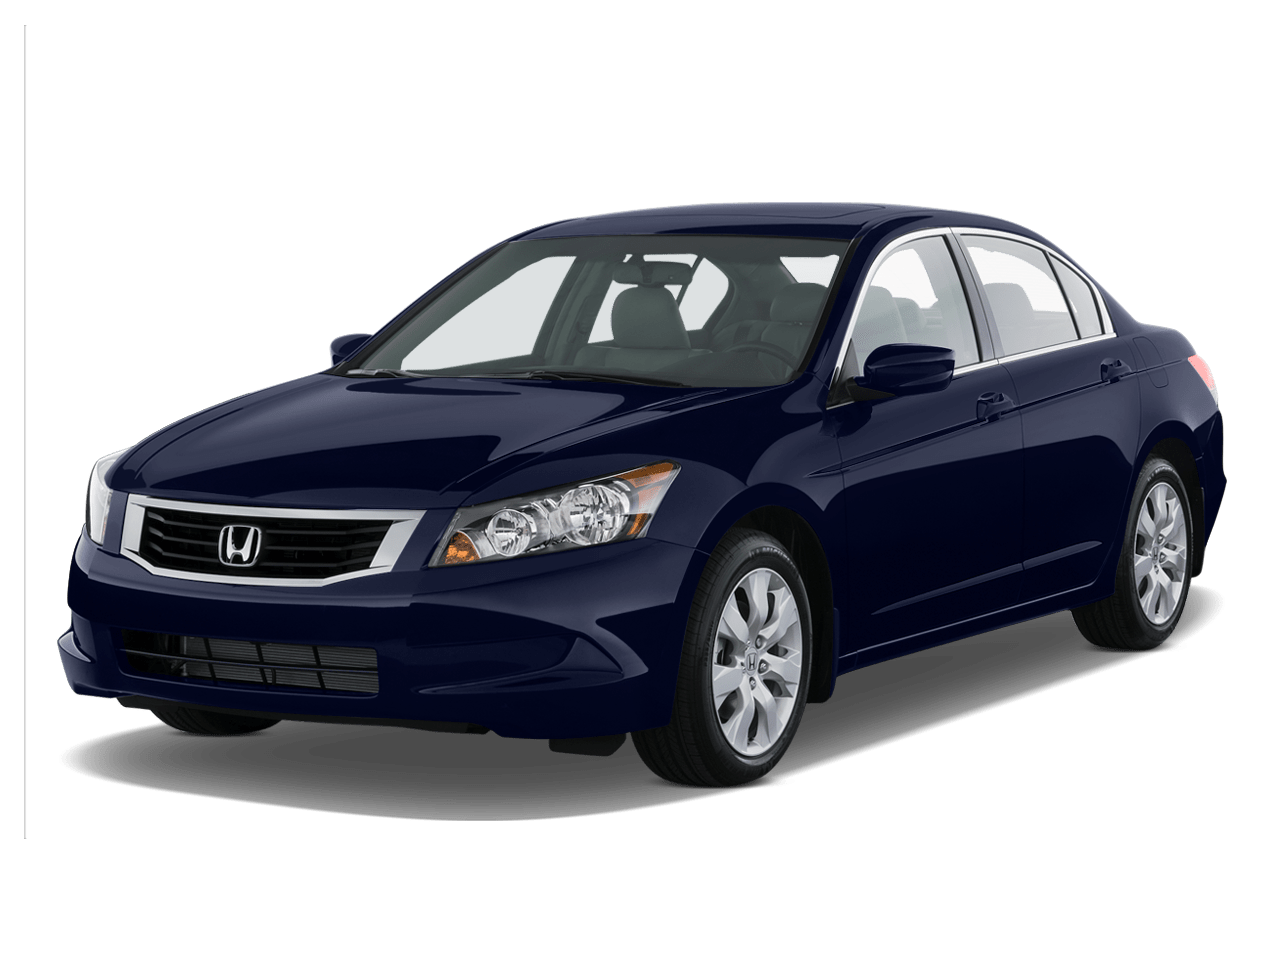 small resolution of 2008 honda accord reviews research accord prices u0026 specs motortrend 2008 honda accord rims 2008